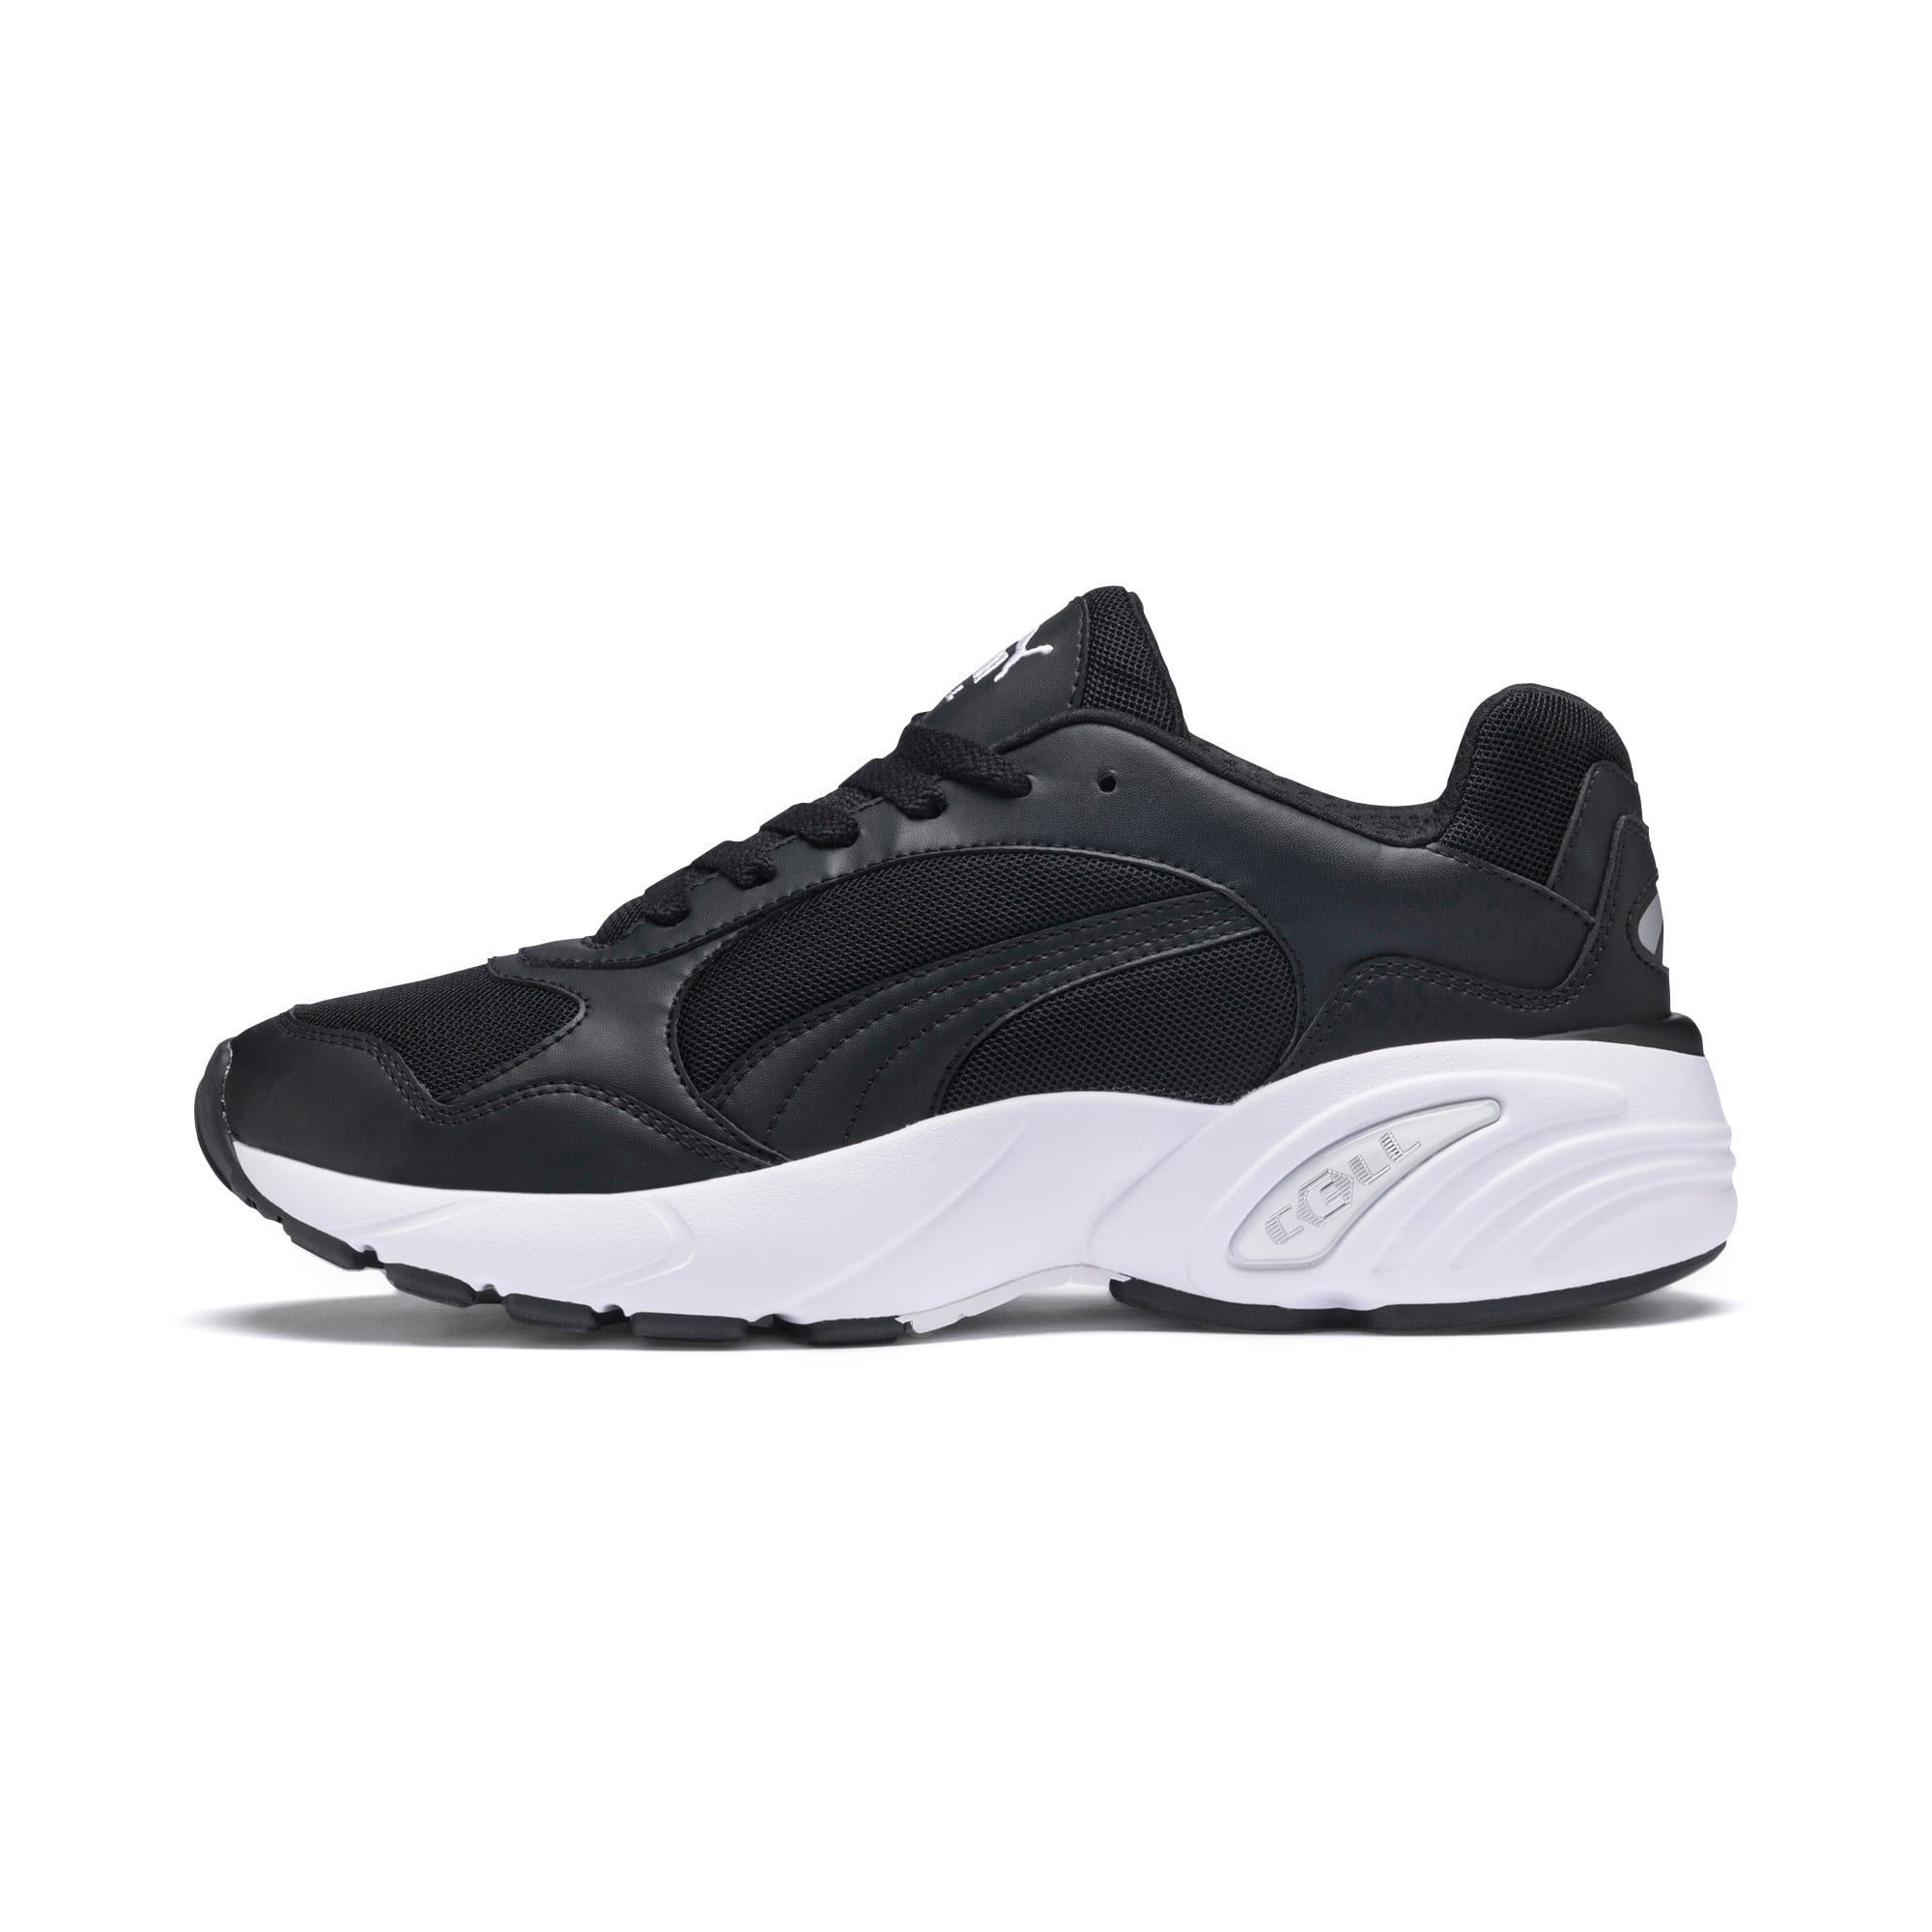 Mens puma cell viper trainers in blackwhite size 105